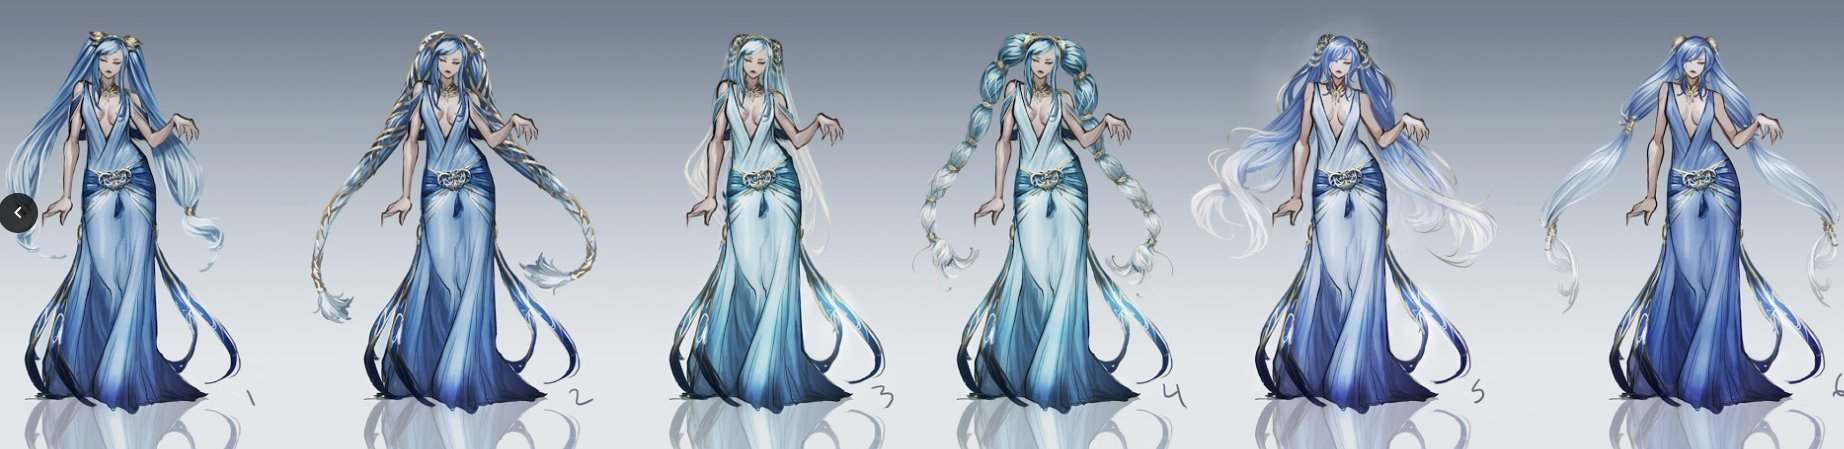 Sona Call of Power concept 04.jpg